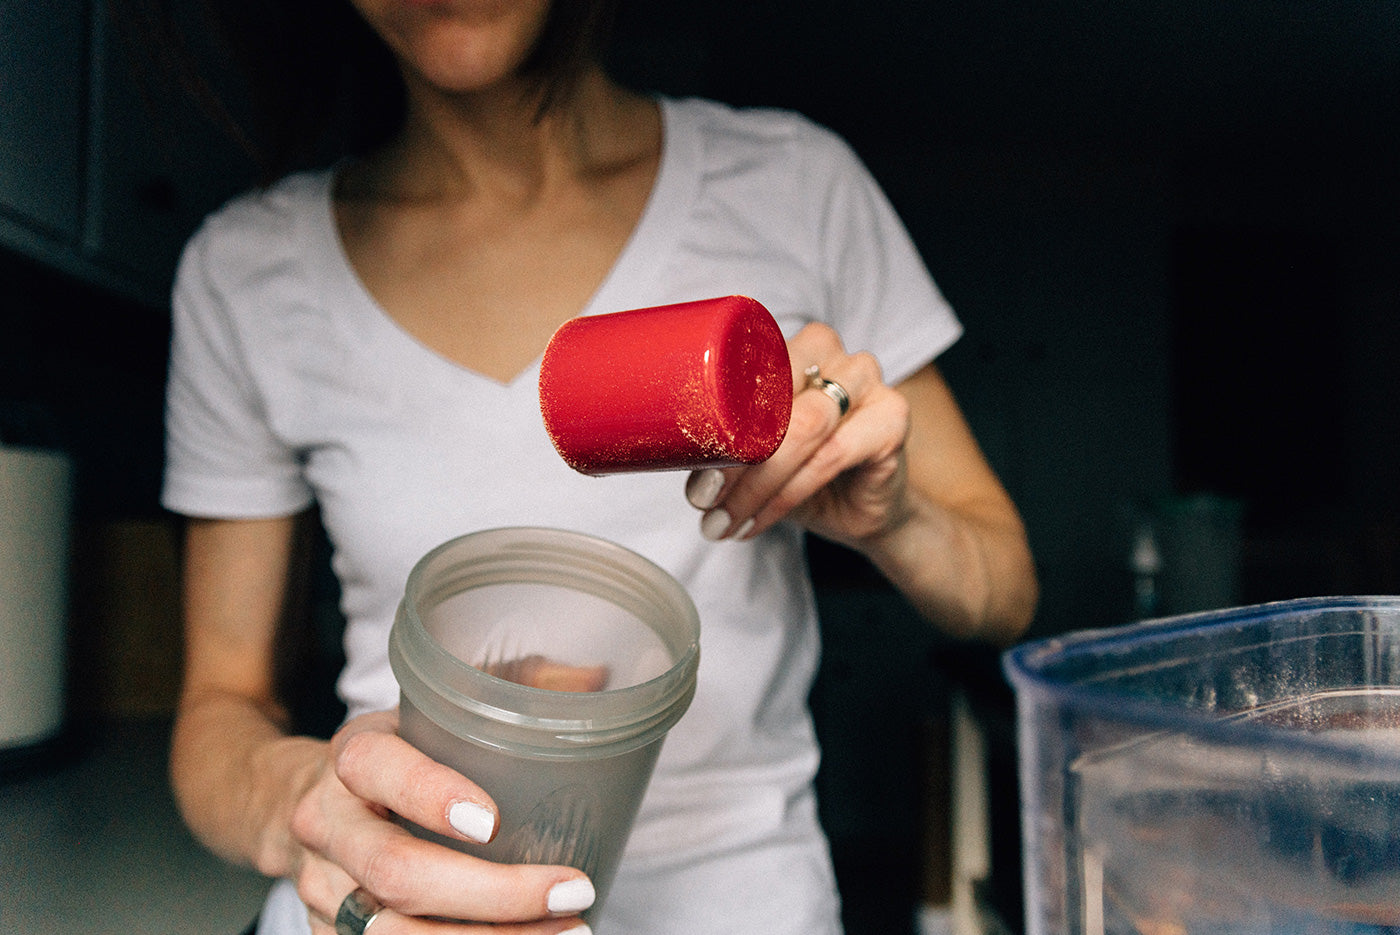 Woman Scooping Protein Blog Post